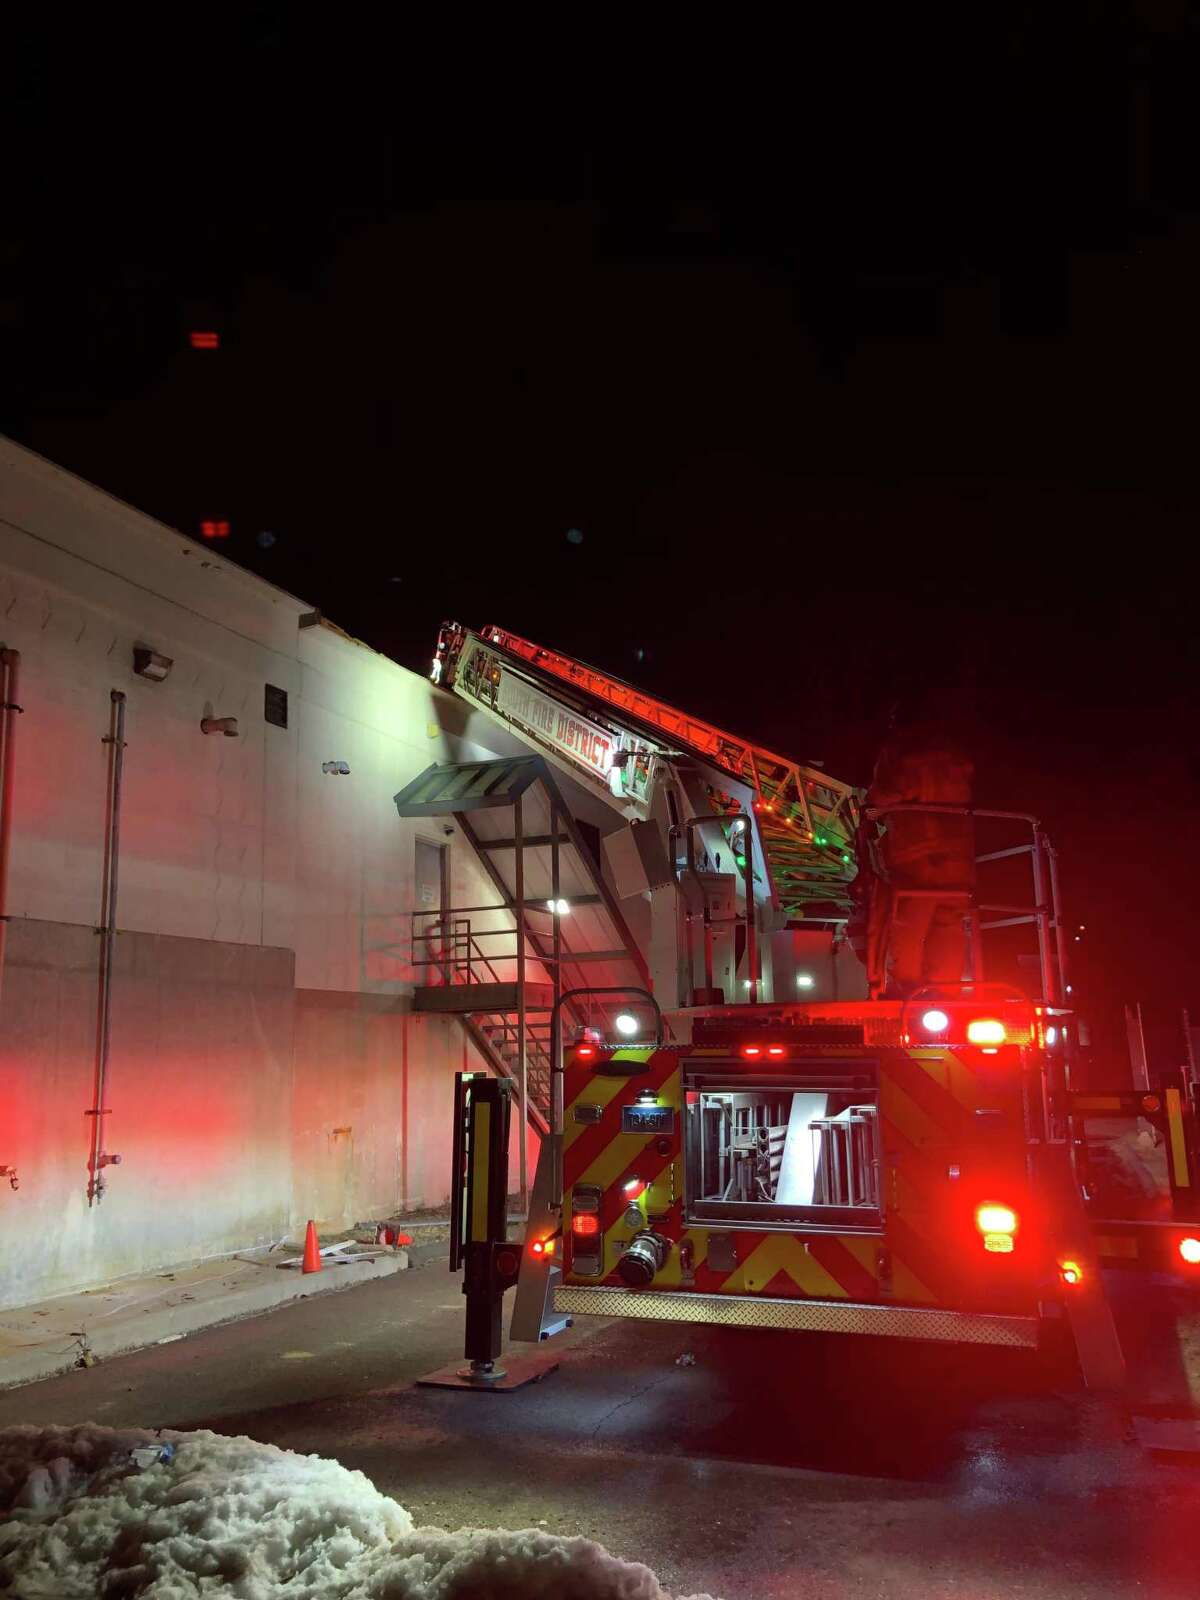 Crews from Middletown's South Fire District, assisted by Middletown Fire Department personnel, knocked down a blaze Monday night on the roof of the water treatment plant on River Road.